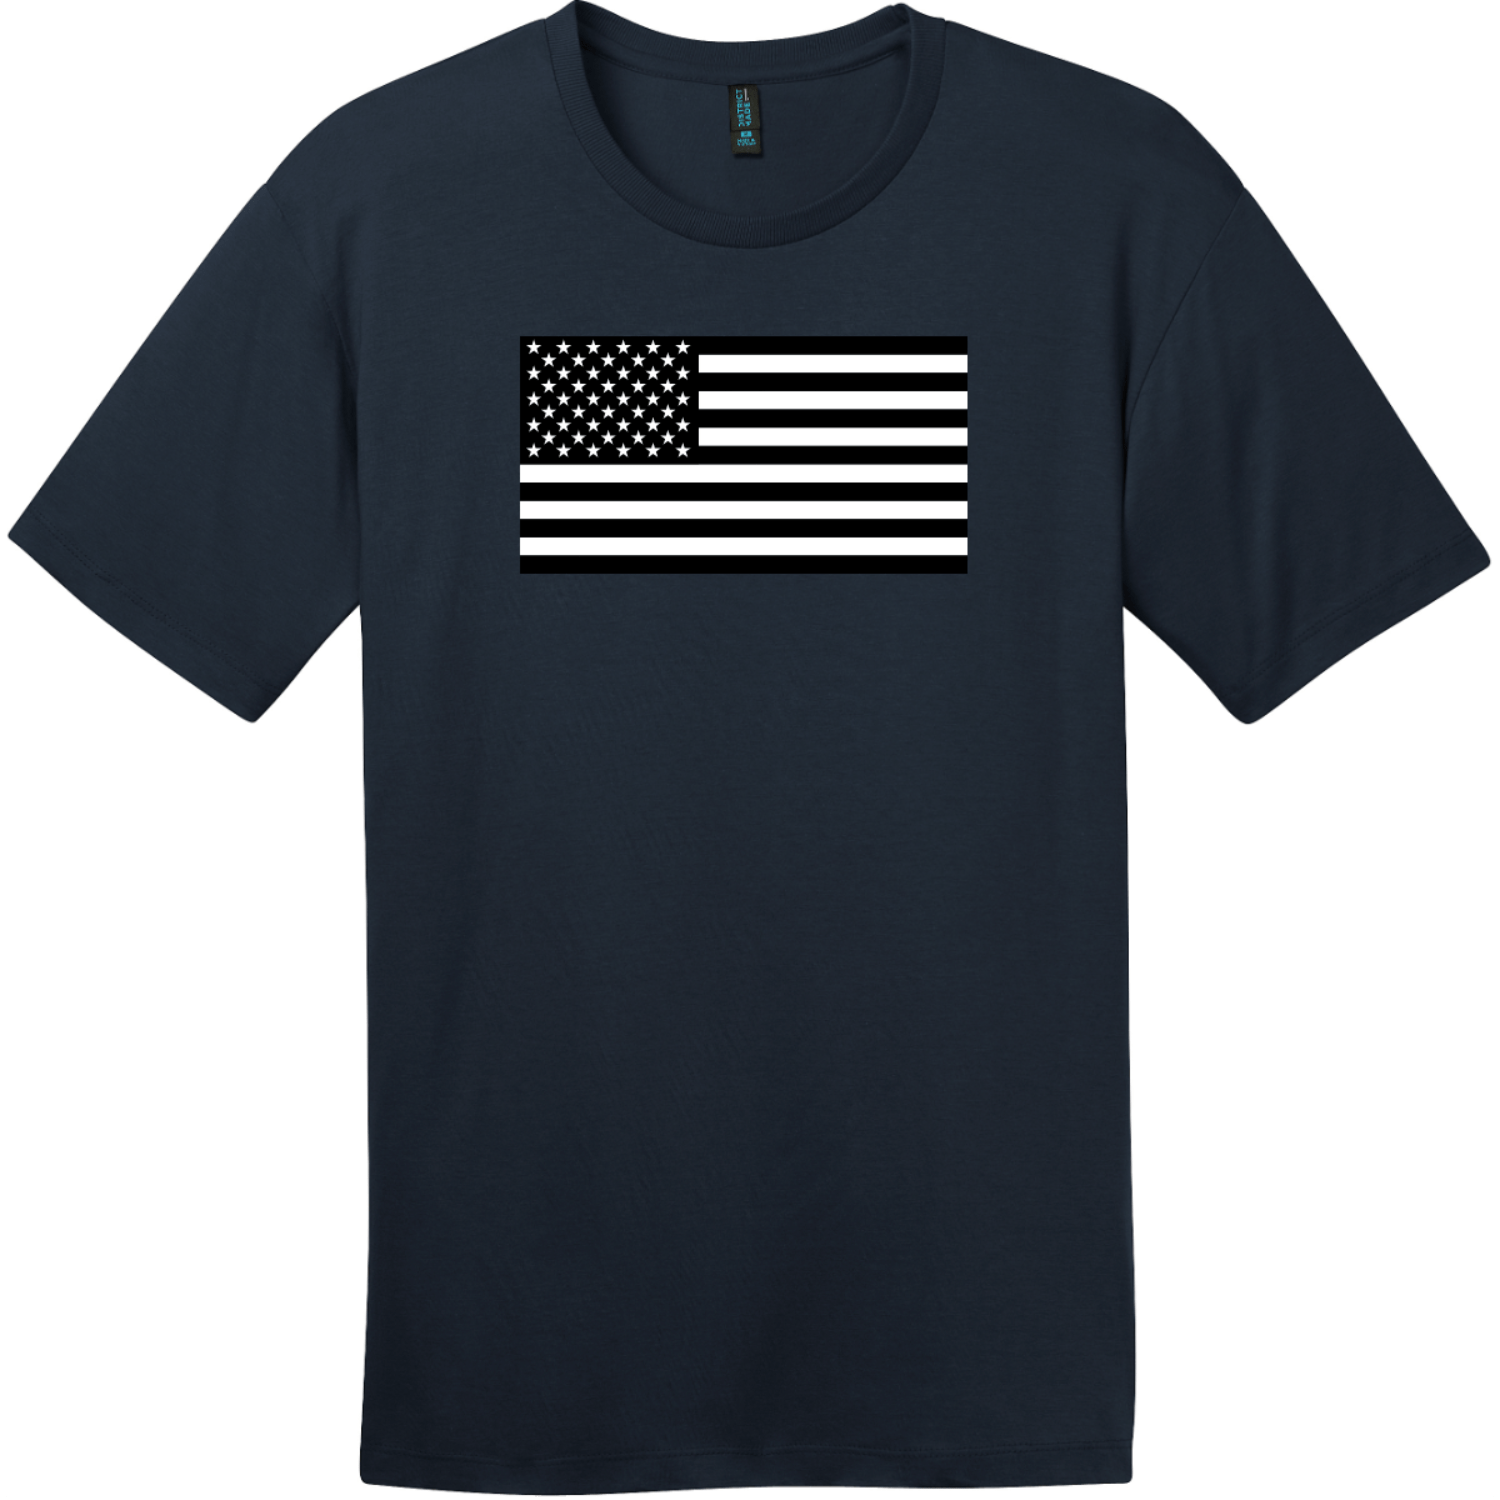 Black And White American Flag T-Shirt New Navy District Perfect Weight Tee DT104